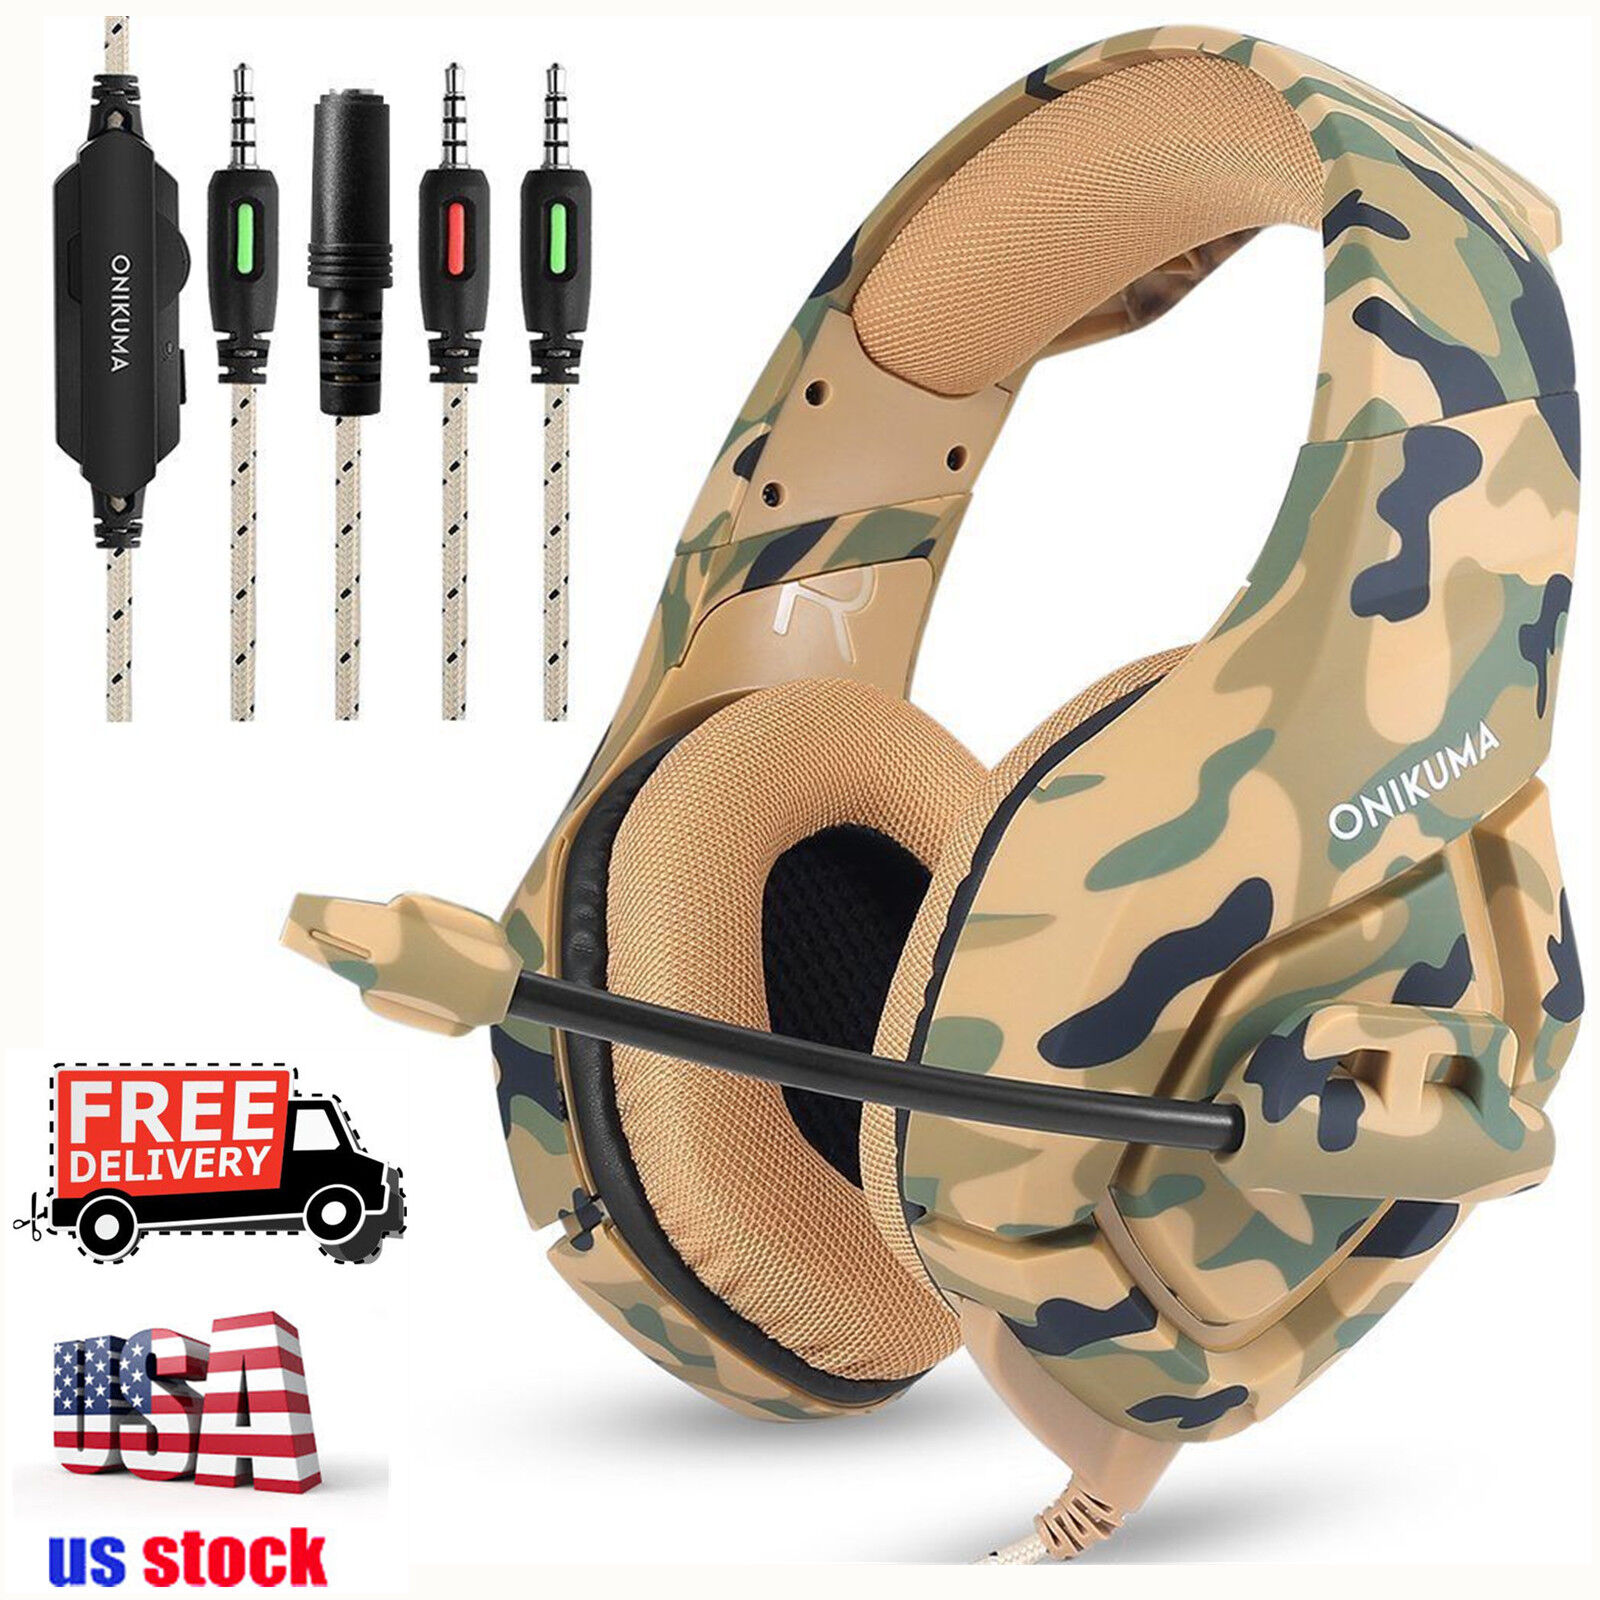 Купить ONIKUMA K1 - ONIKUMA K1 Stereo PC Gaming Headset for PS4 New Xbox One with Mic Camouflage